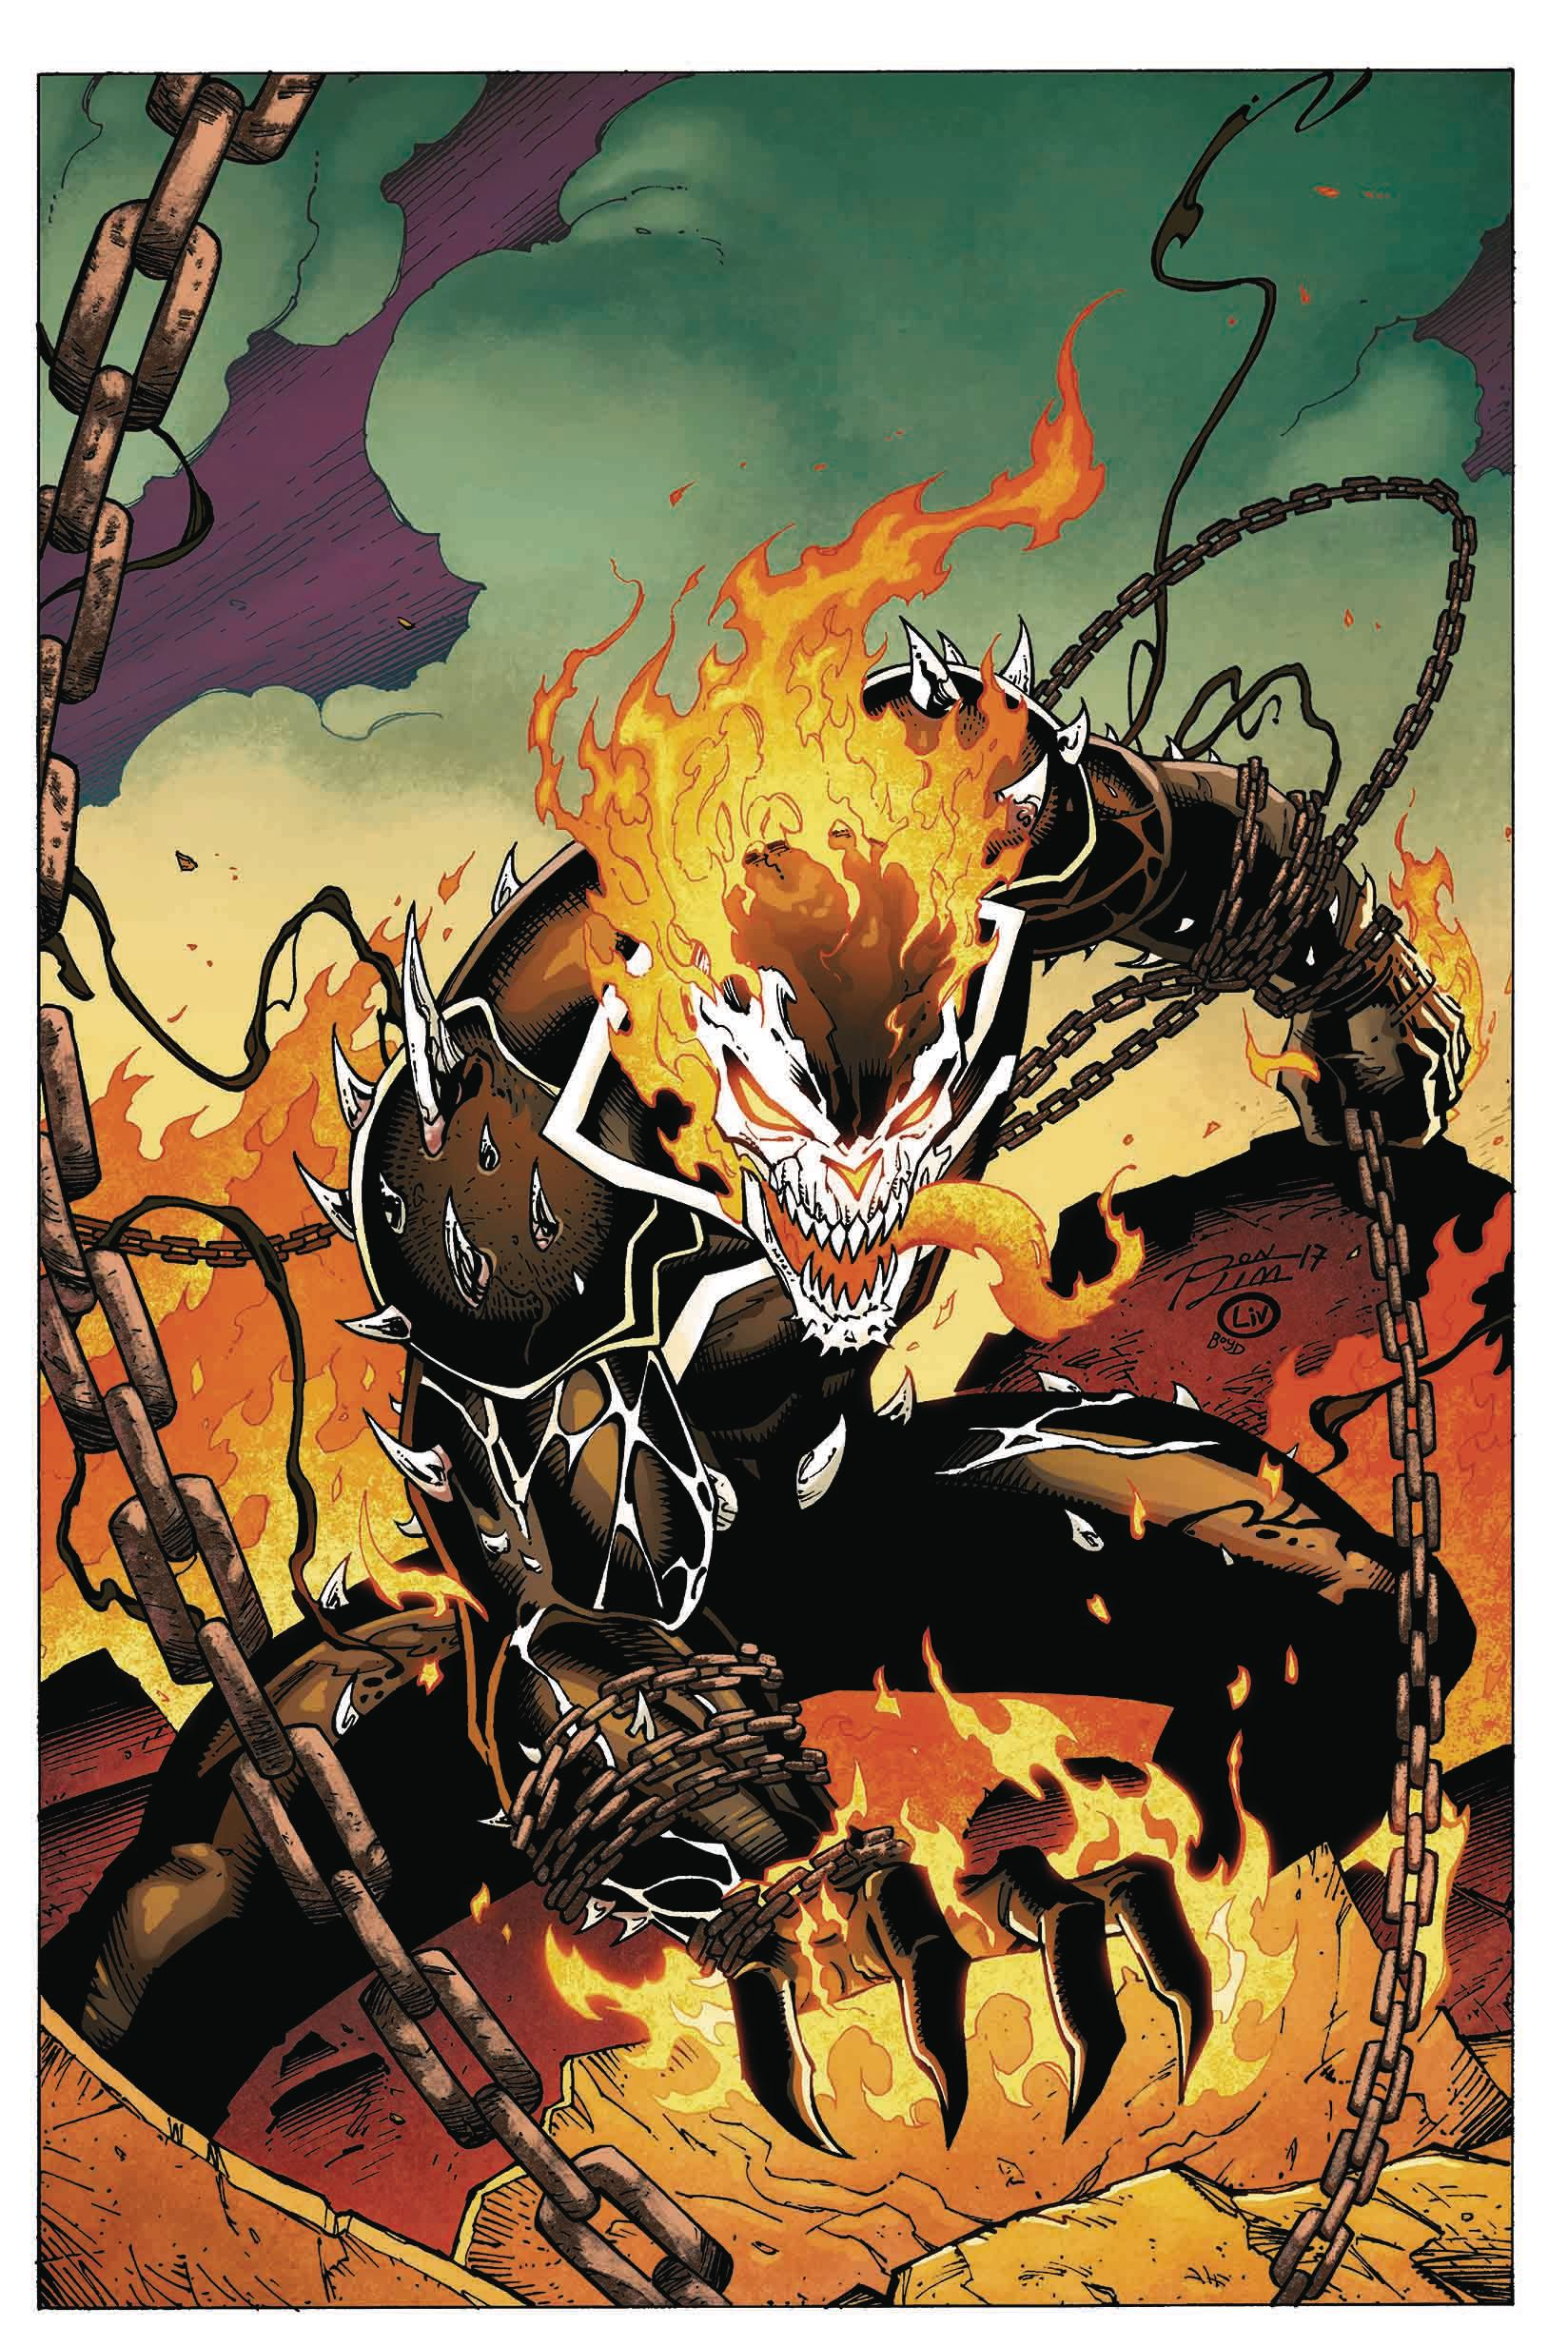 Episode 2 Variant of the Week! - (Marvel) Edge of the Venomverse #3 (Lim Variant)Cover by Ron LimWritten by Simon SpurrierIllustrated by Tigh WalkerDid the Content Match the Drapes? - UNR